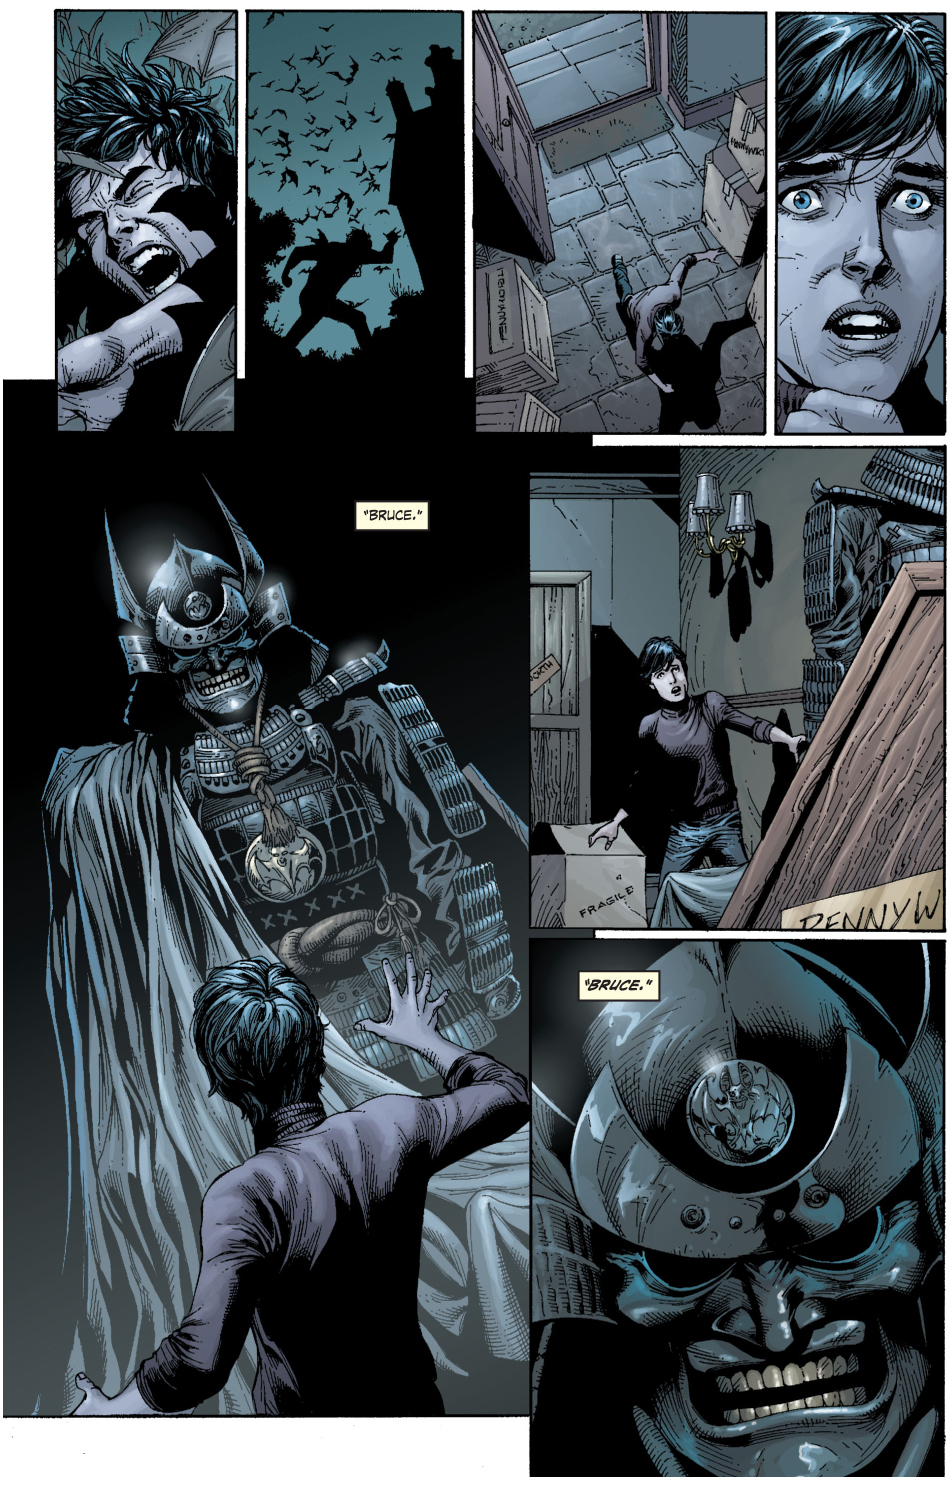 how bruce chose the bat as a symbol (earth 1)